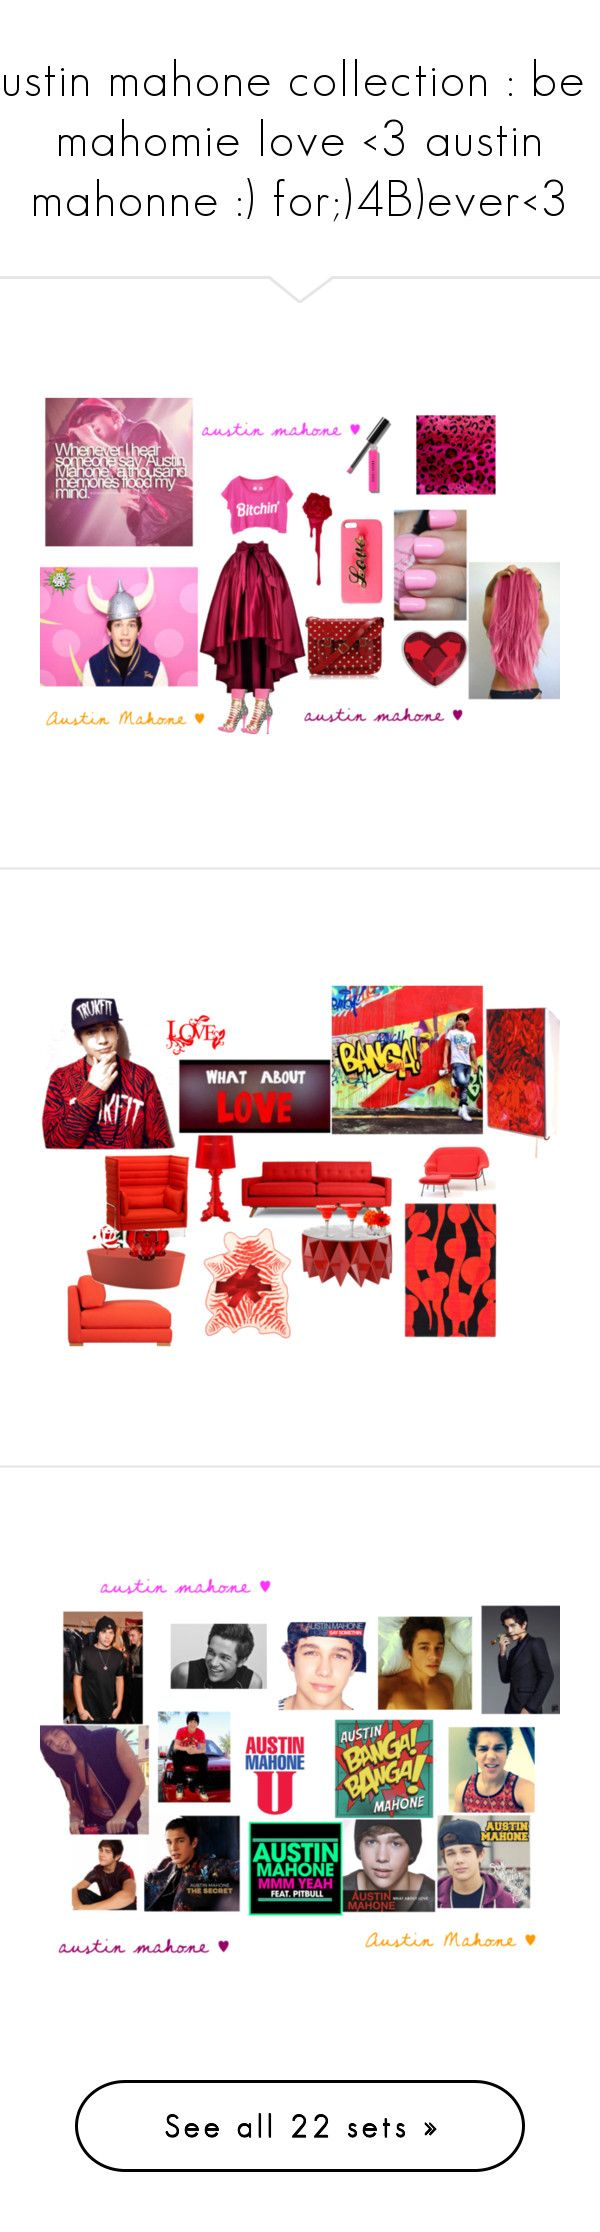 """""""austin mahone collection : be a mahomie love <3 austin mahonne :) for;)4B)ever<3"""" by sarah4551 ❤ liked on Polyvore featuring interior, interiors, interior design, home, home decor, interior decorating, Bobbi Brown Cosmetics, Steve Madden, FC Select Vegan Bags and Swarovski"""